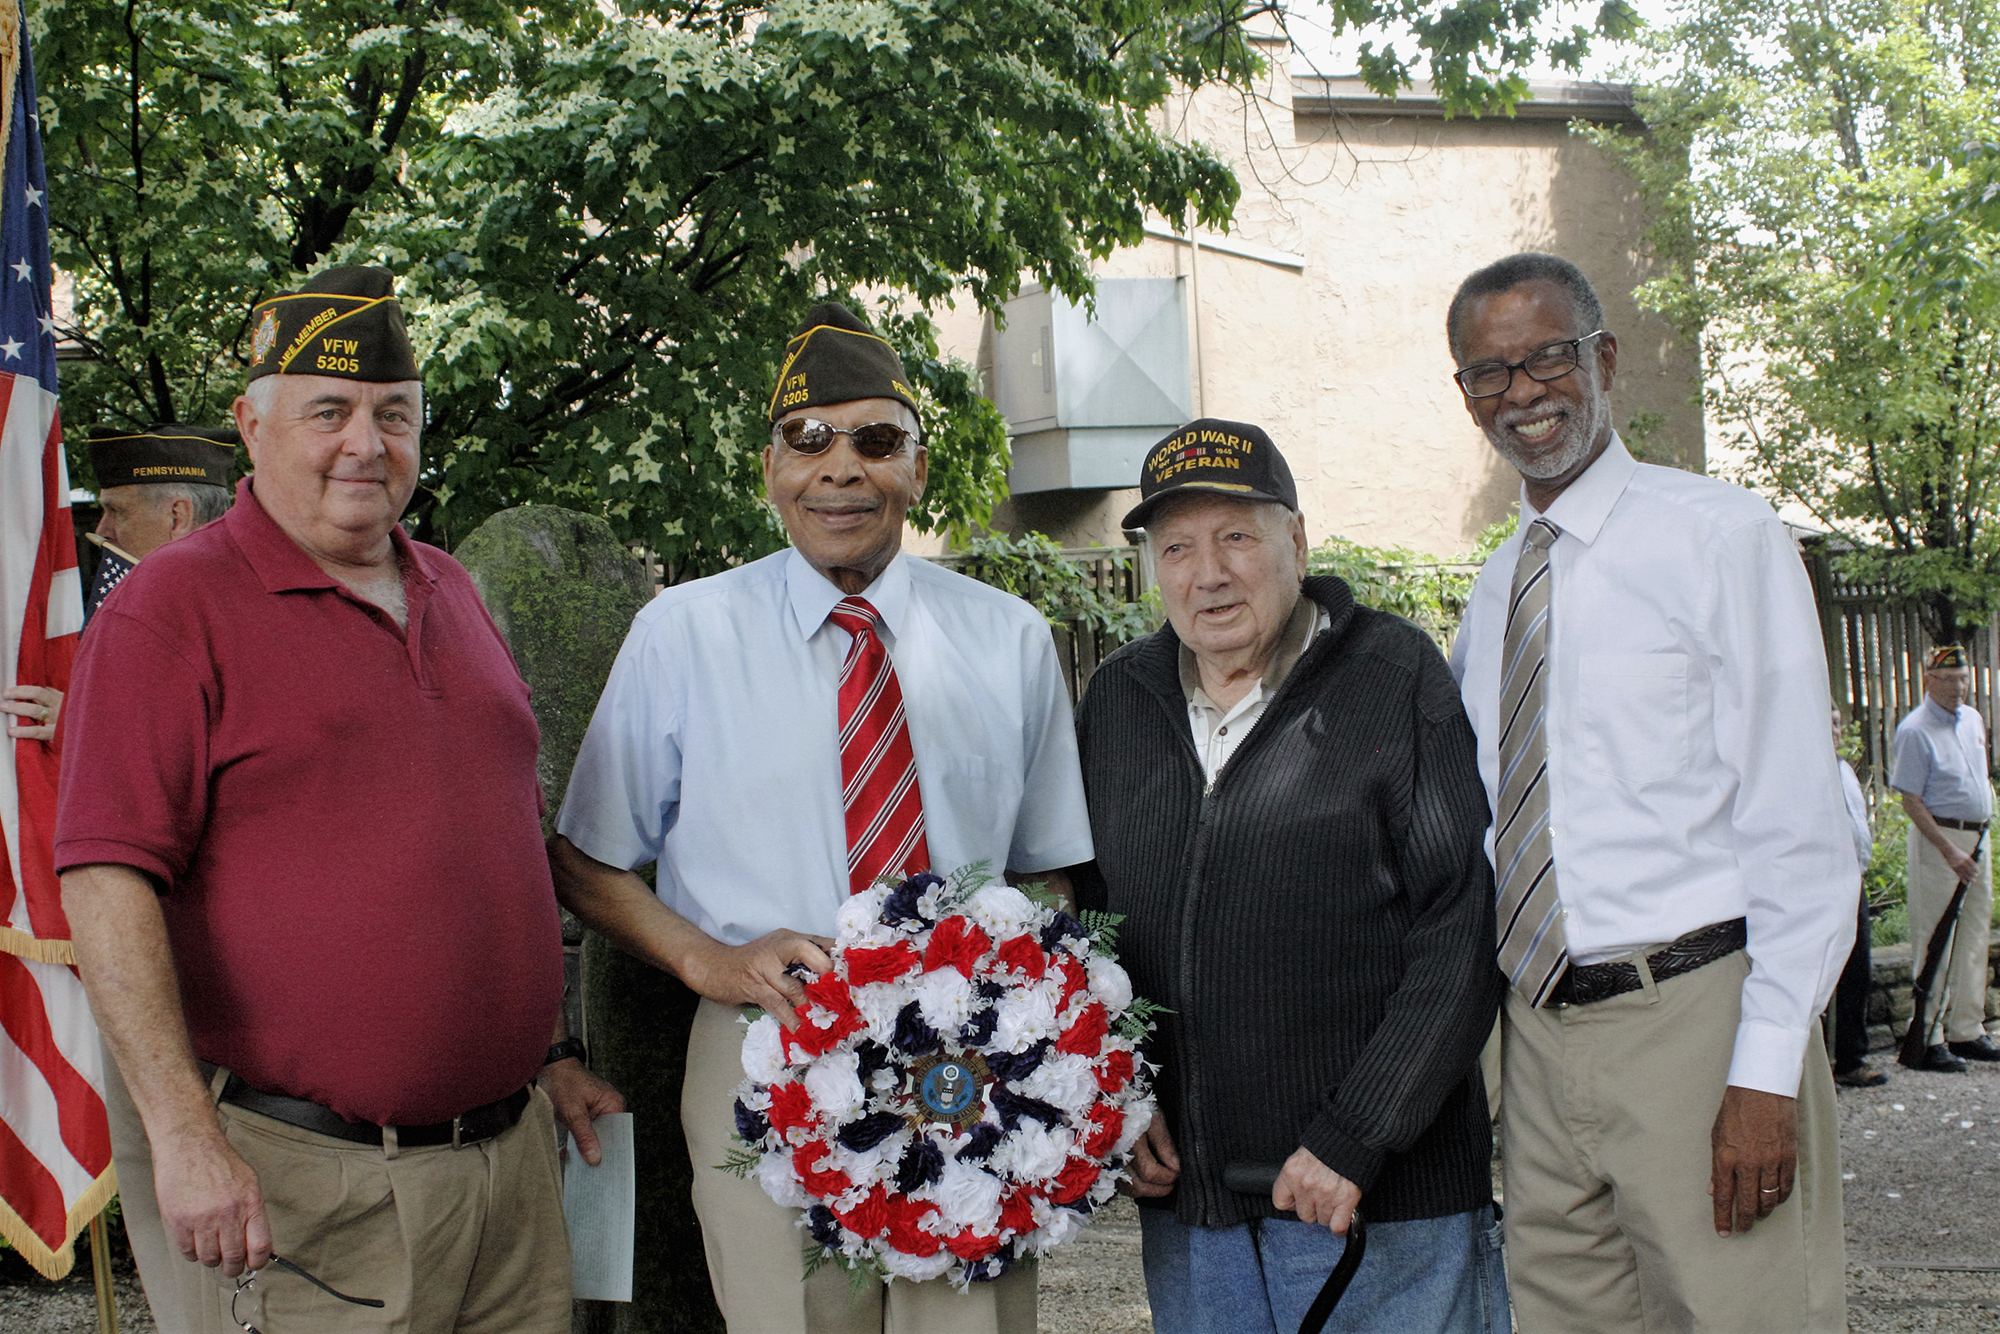 May 30, 2016: Senator Haywood takes part in Memorial Day commemoration event with VFW 5205 in Chesnut Hill (Photo: Sue Ann Rybak)